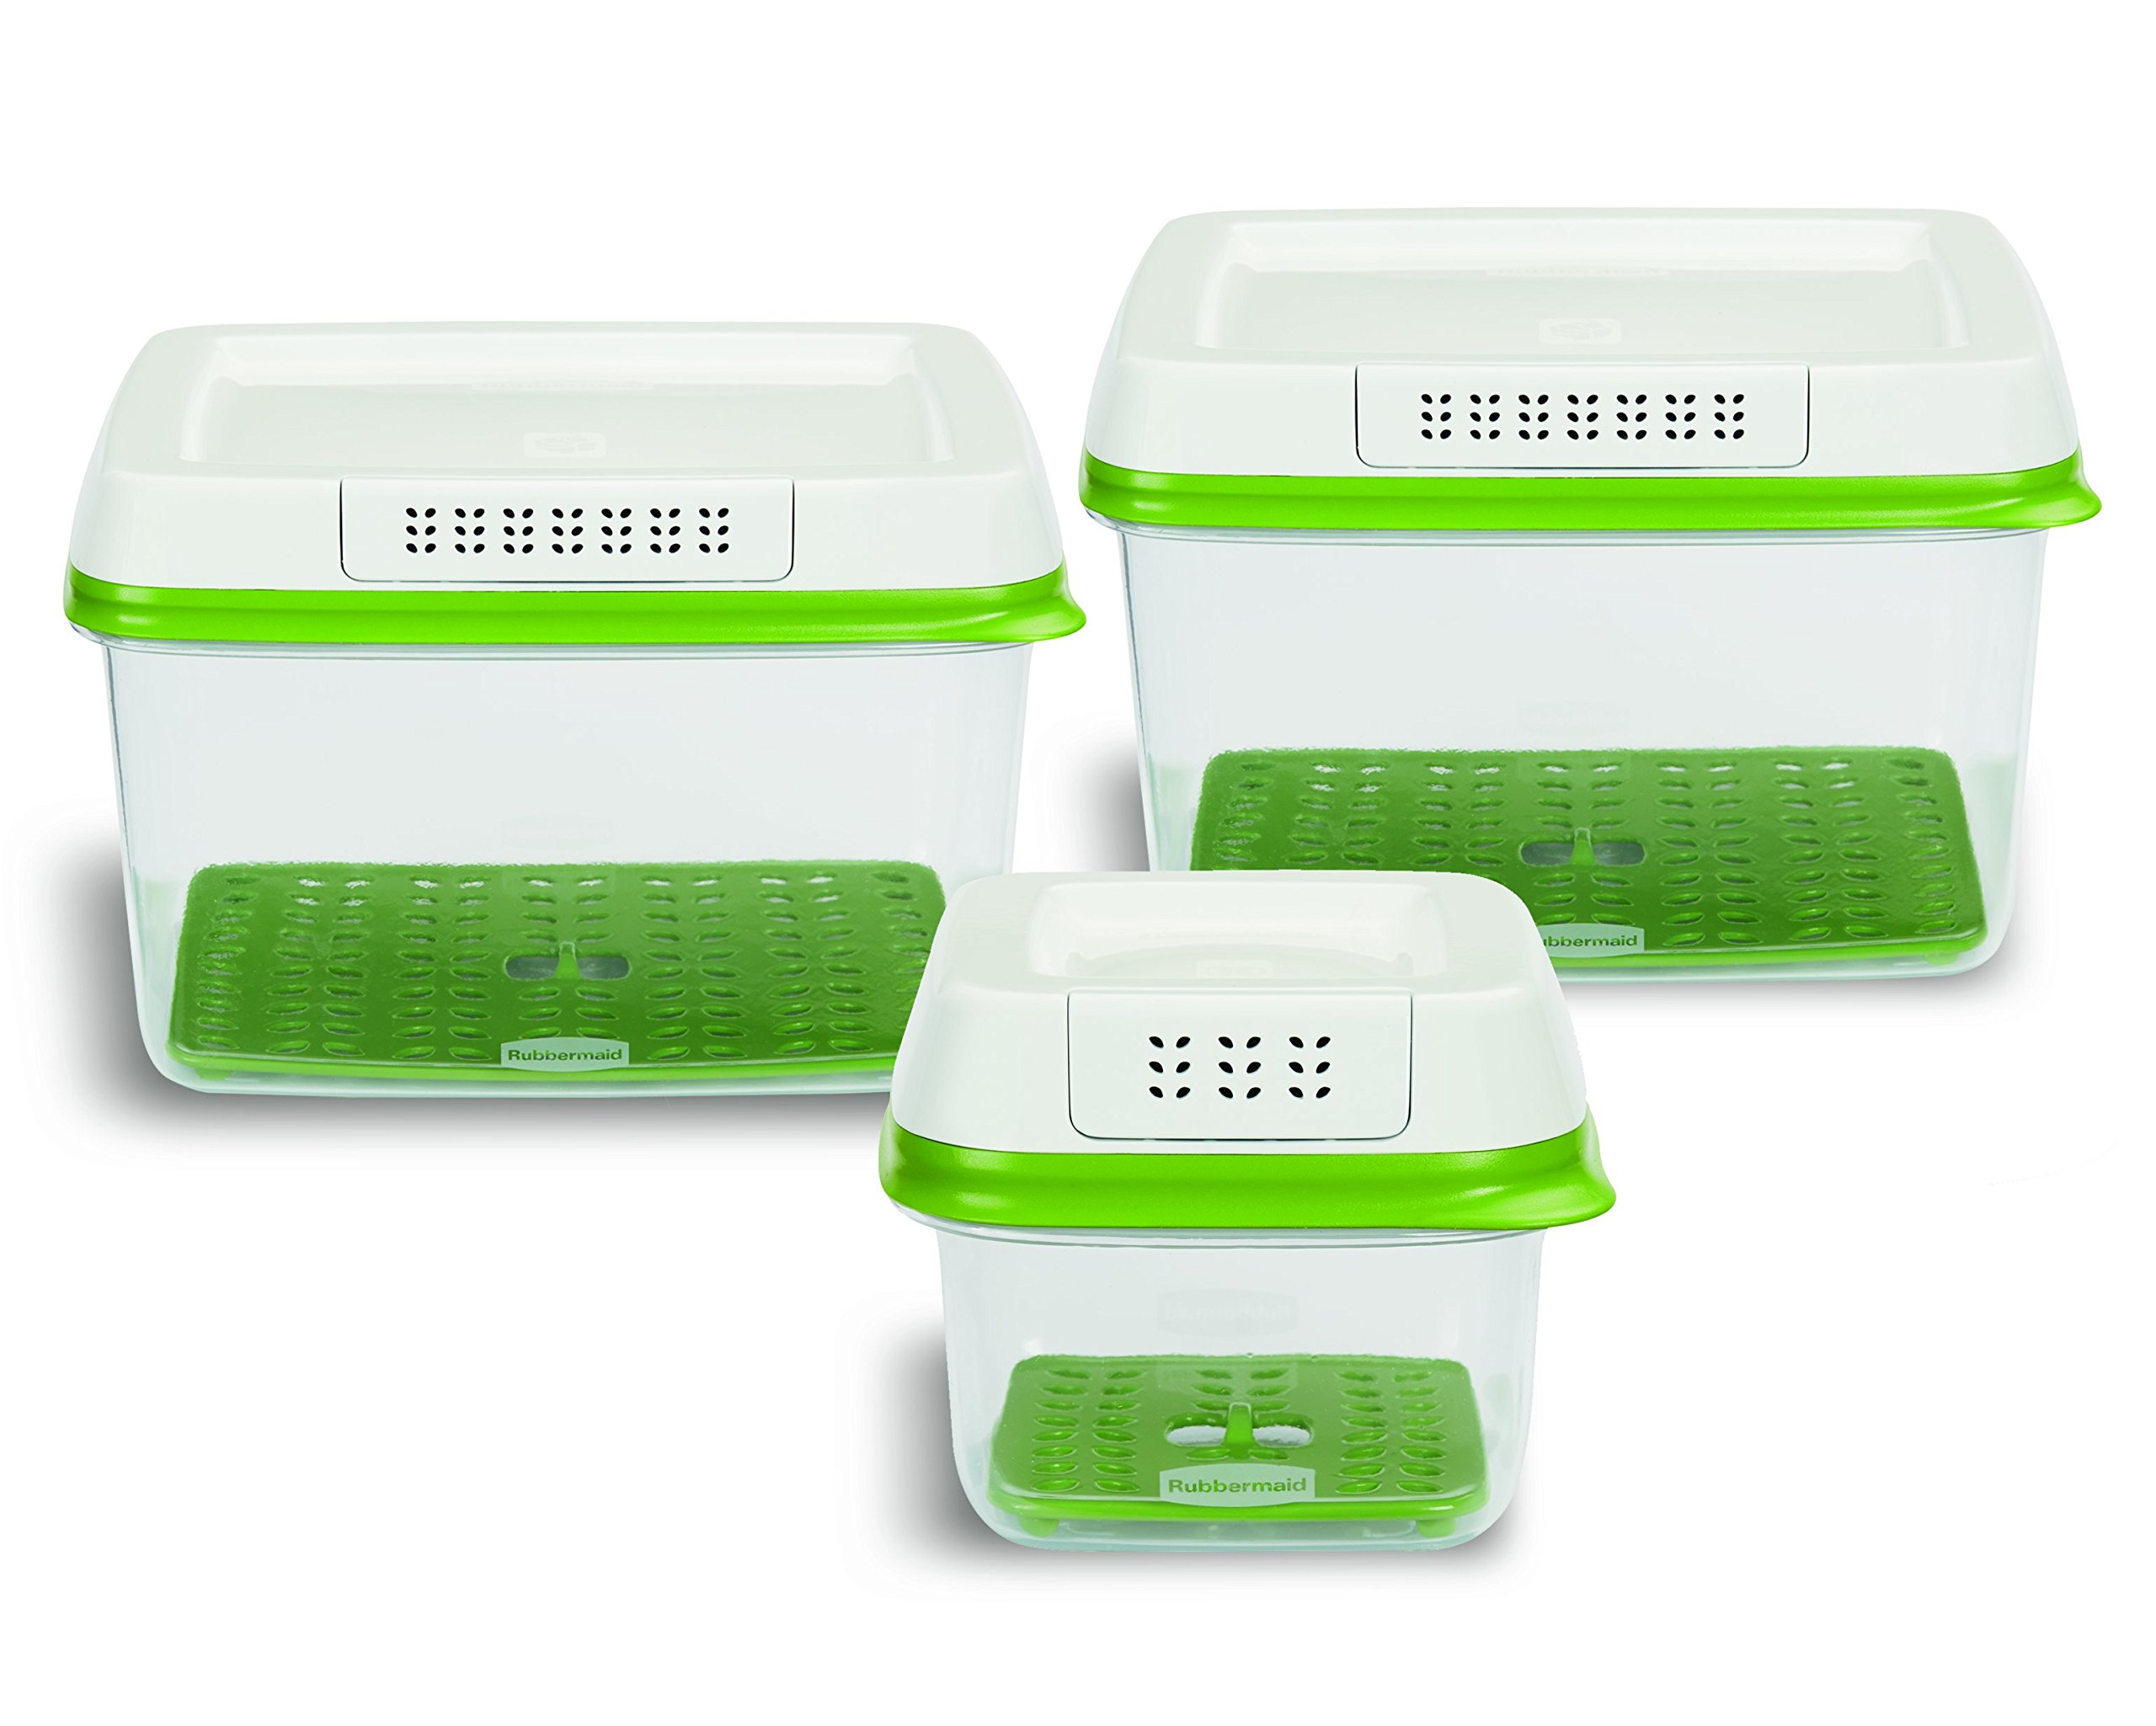 Galleon rubbermaid freshworks produce saver food storage containers set of 3 for Kitchen set toys r us philippines